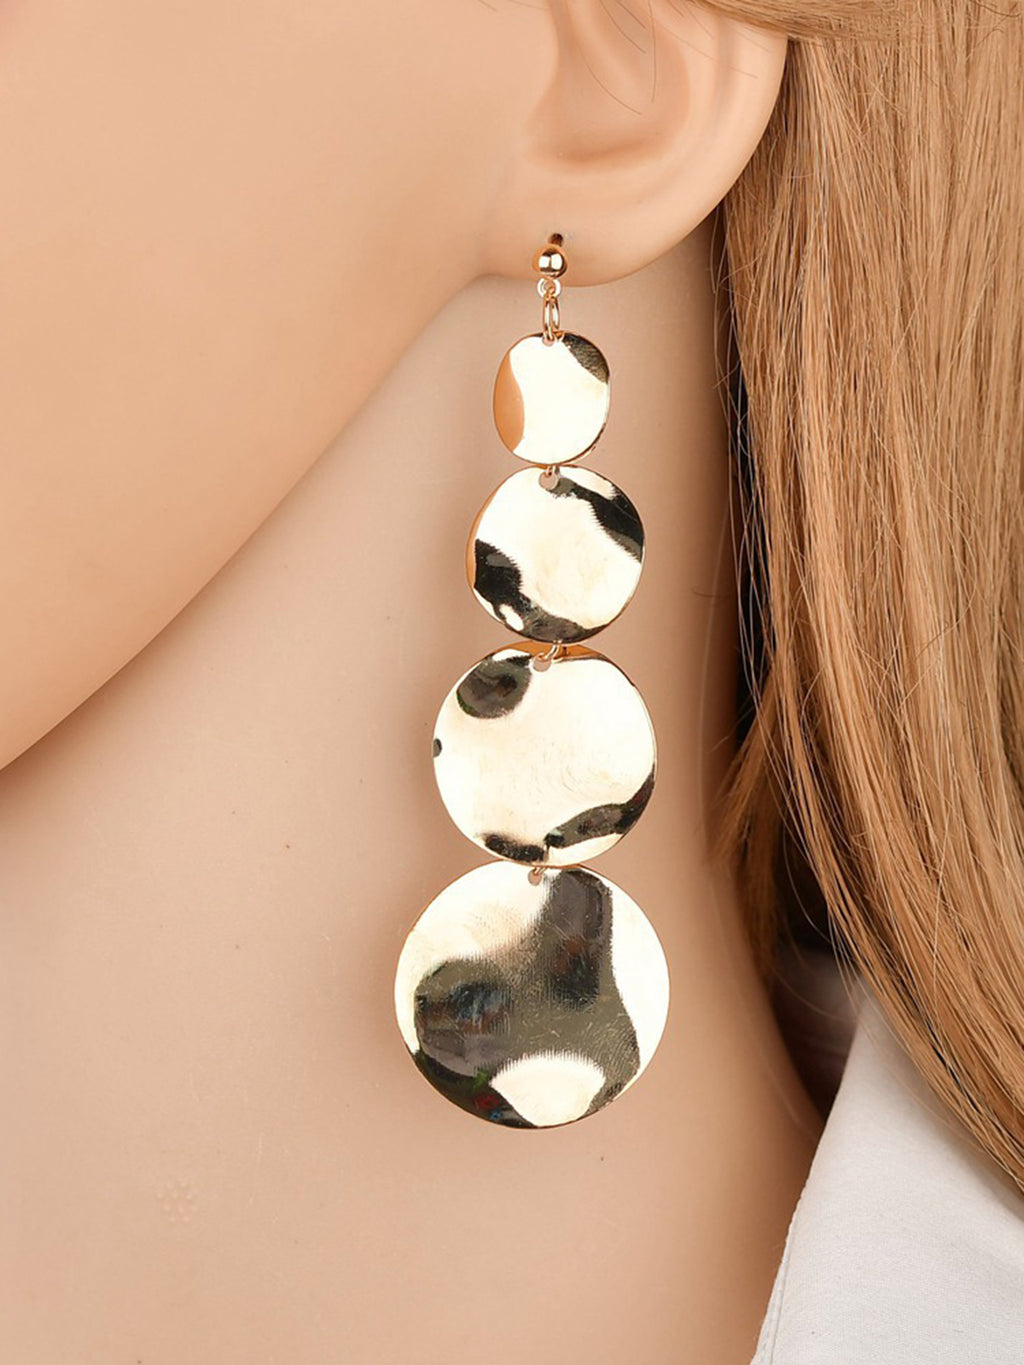 Womens Retro Long Round Circular Earrings